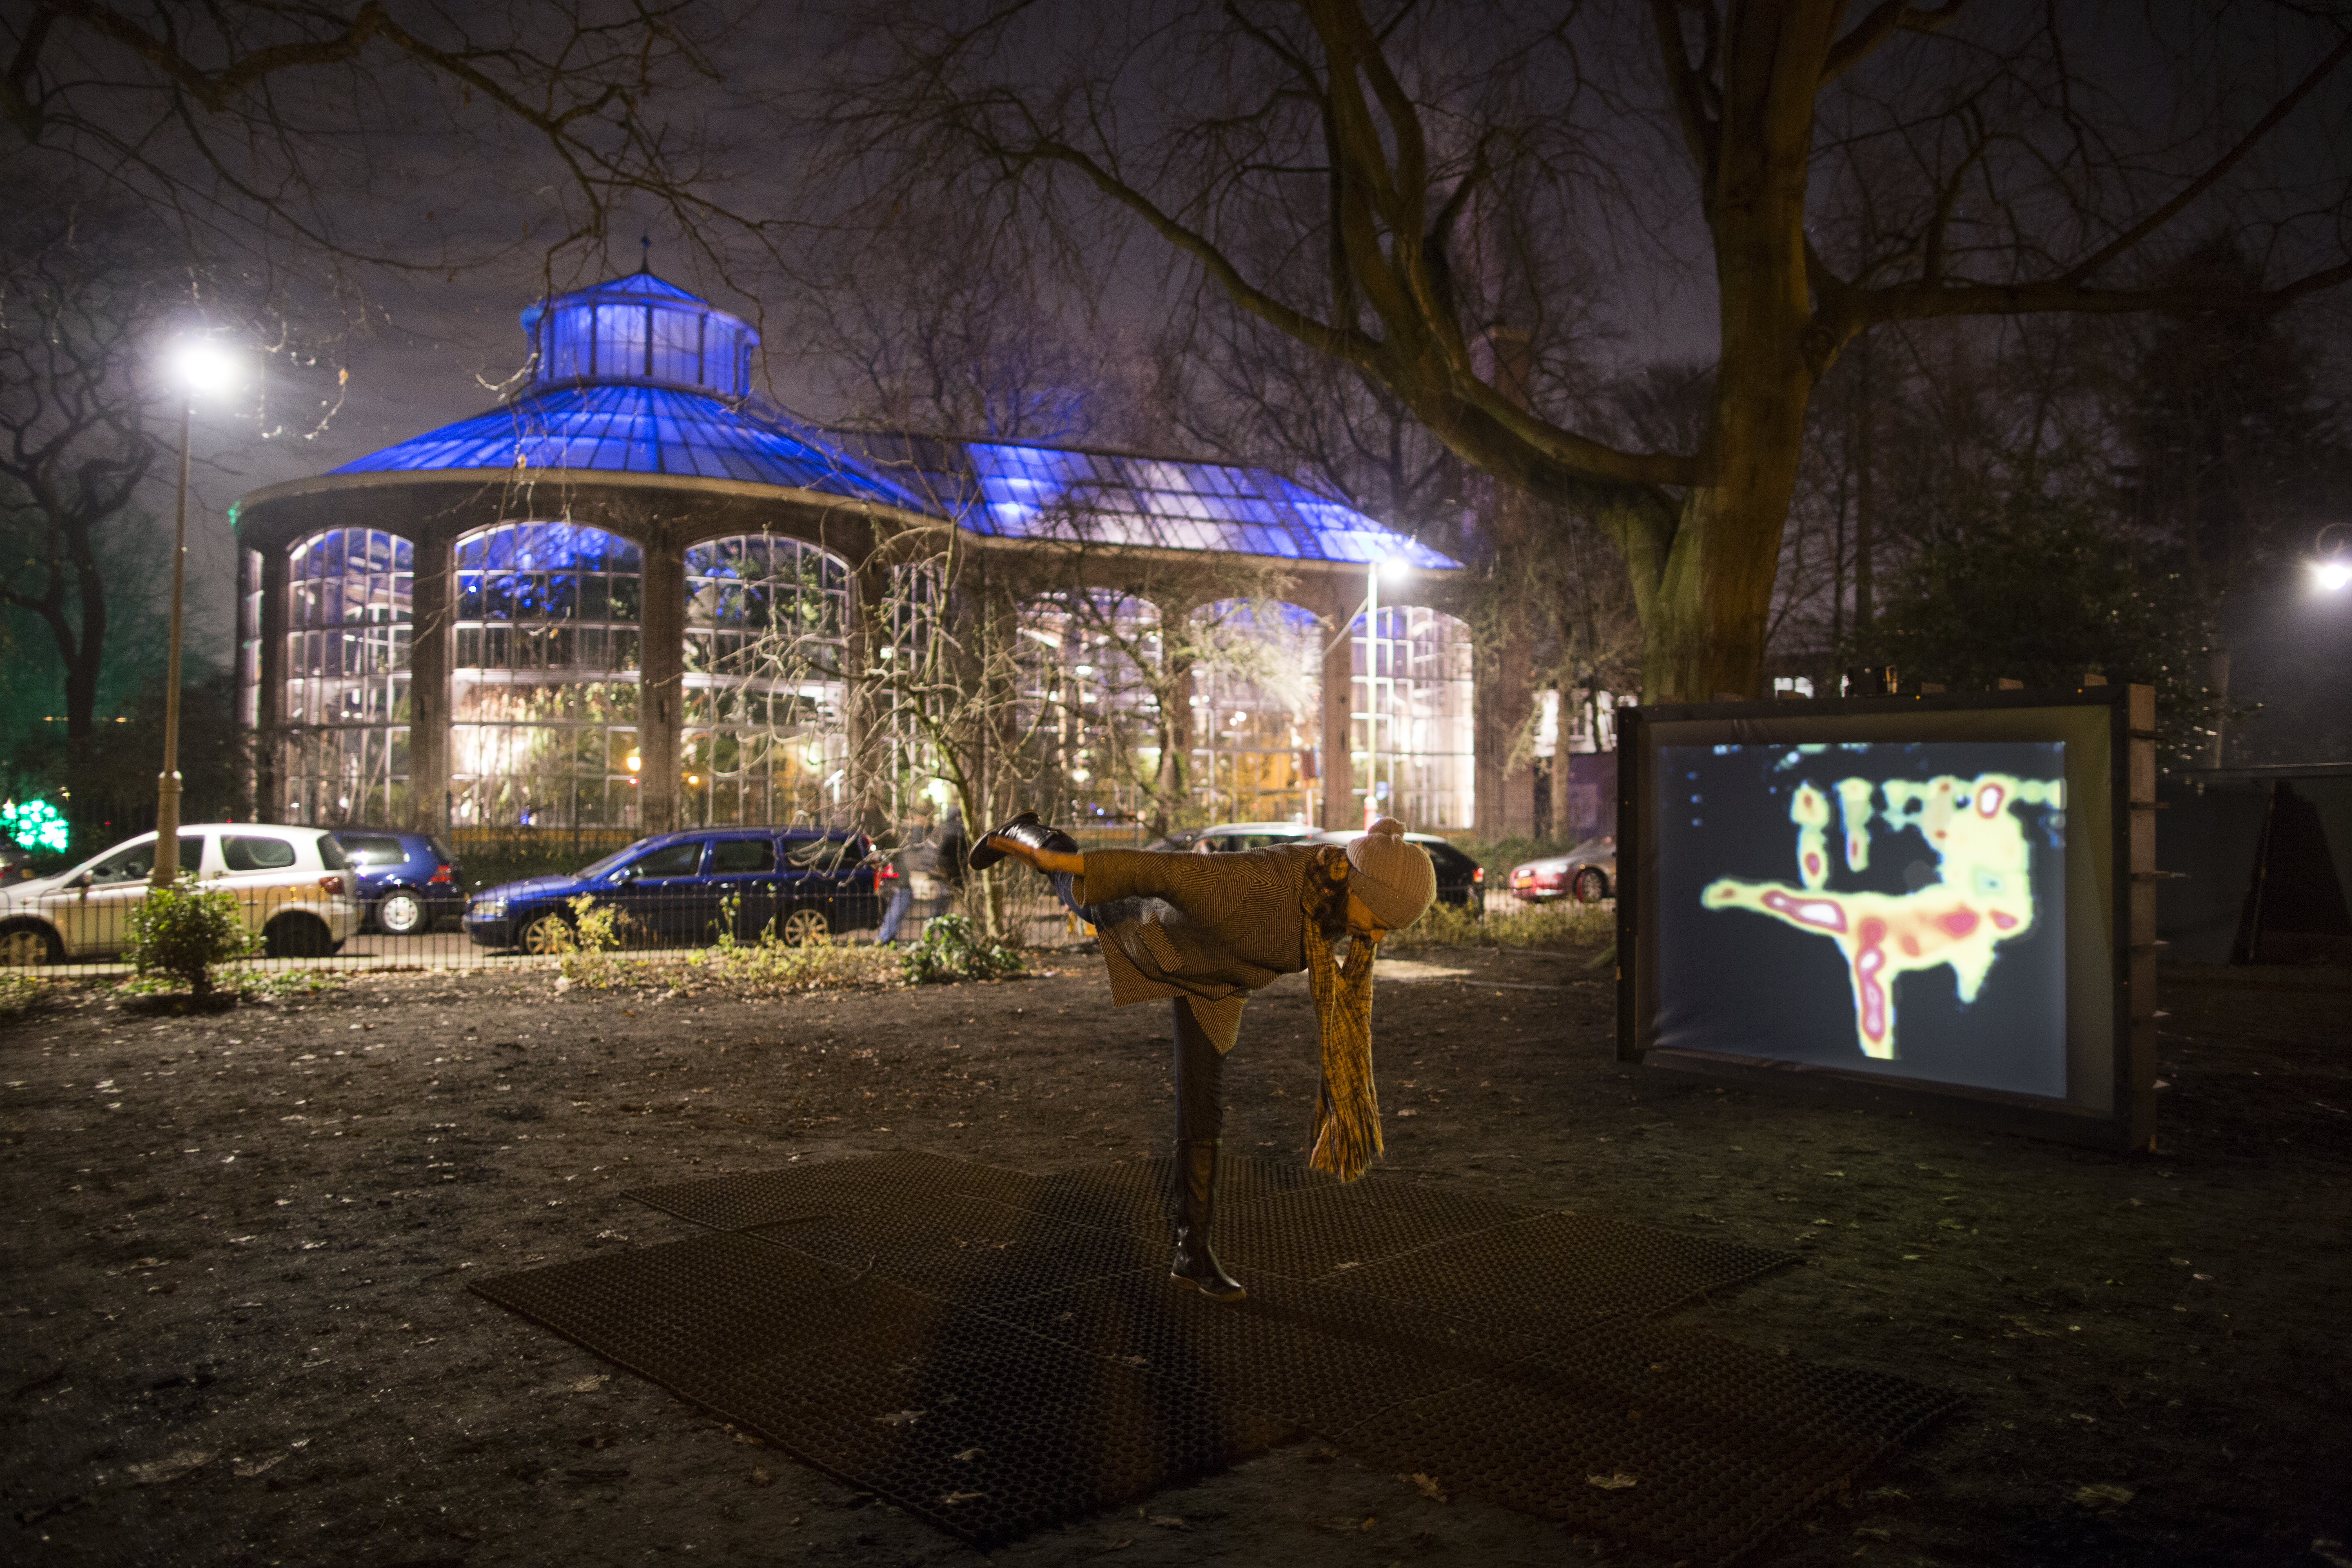 The Enthalpy artwork by John Bell captures visitors in visualized heat signatures at Amsterdam Light Festival